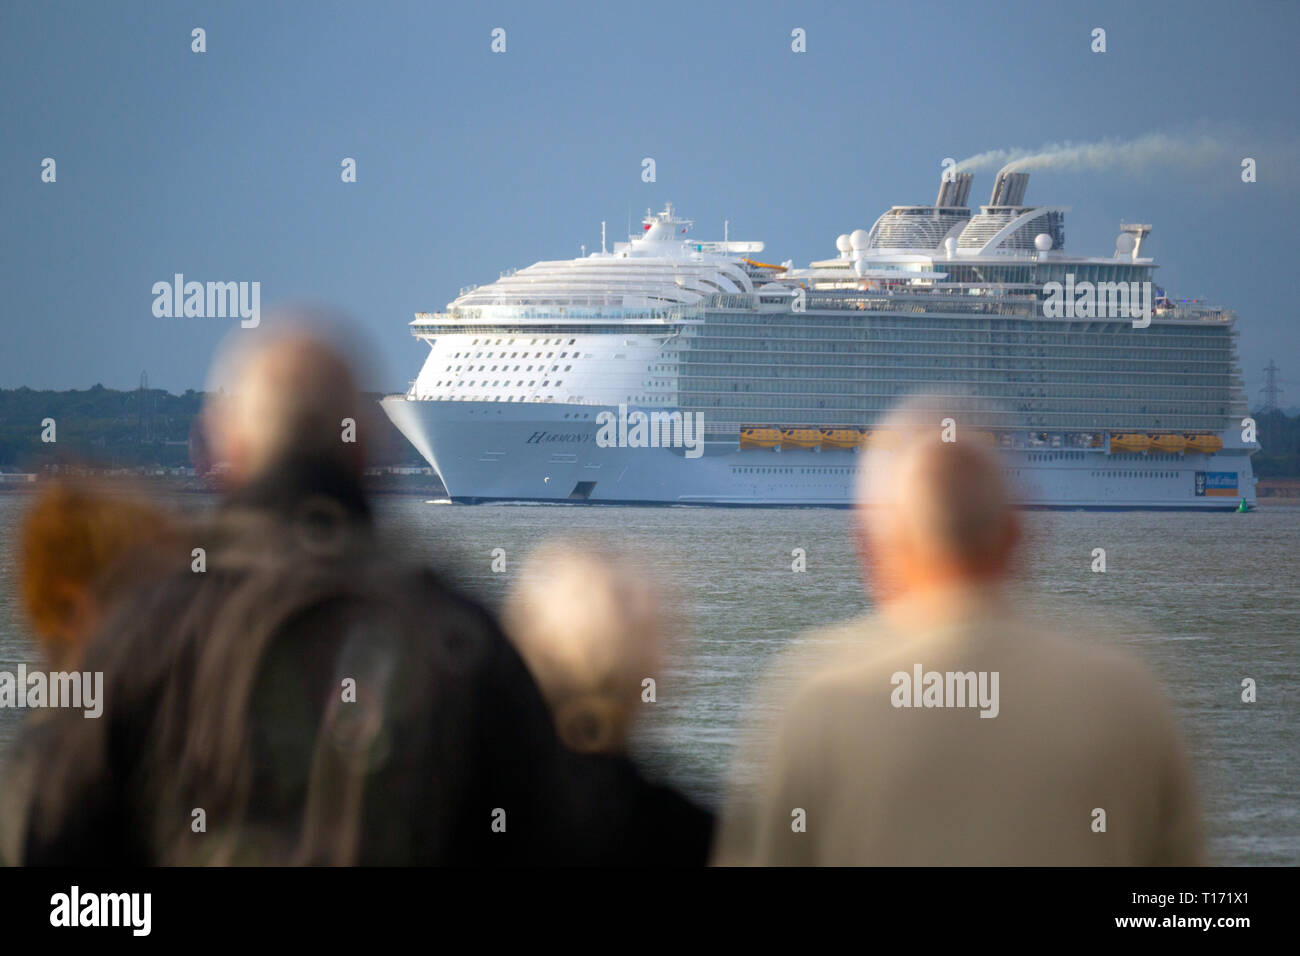 massive,huge,Pollution,Harmony of the Sea, Cruise Liner, ship, Cowes, Isle of Wight, The Solent,leaving,Southampton,Port,Terminal,England, UK, - Stock Image